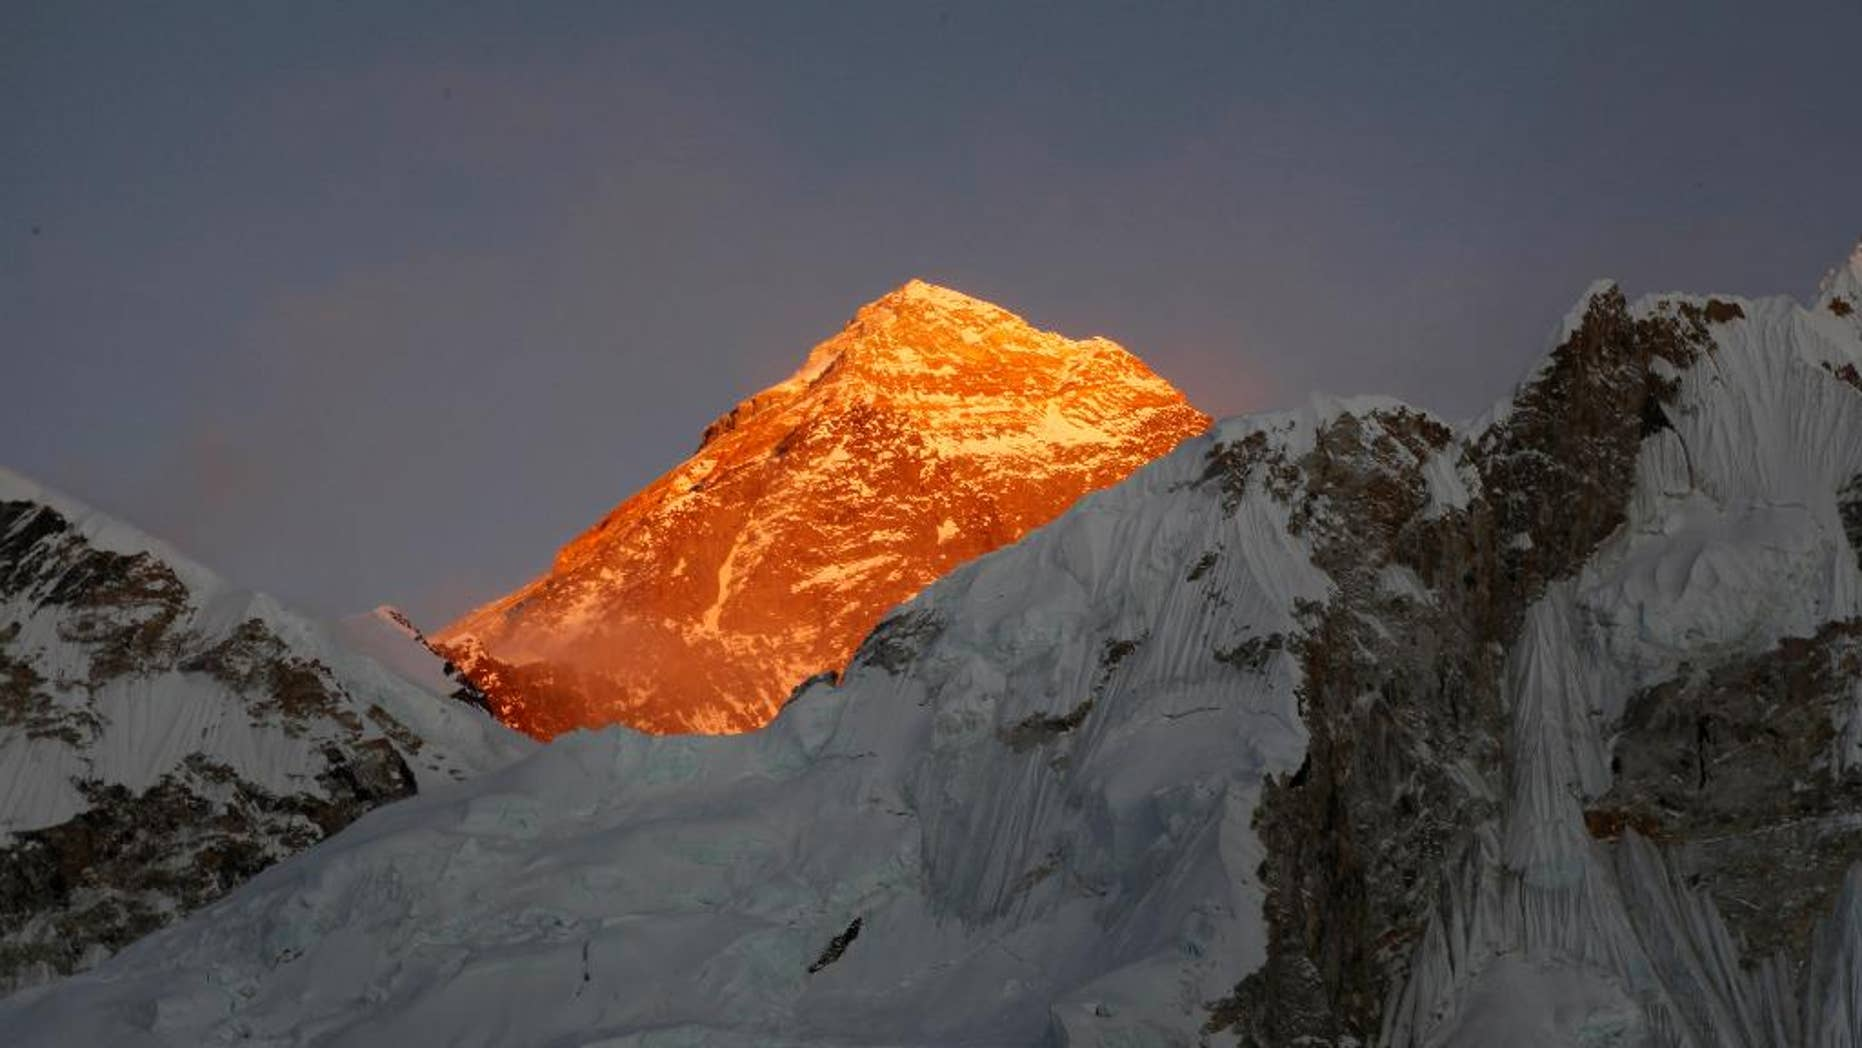 On November 12, 2015 photo, Mt. Everest can be seen from the road to Kalapatthar in Nepal.